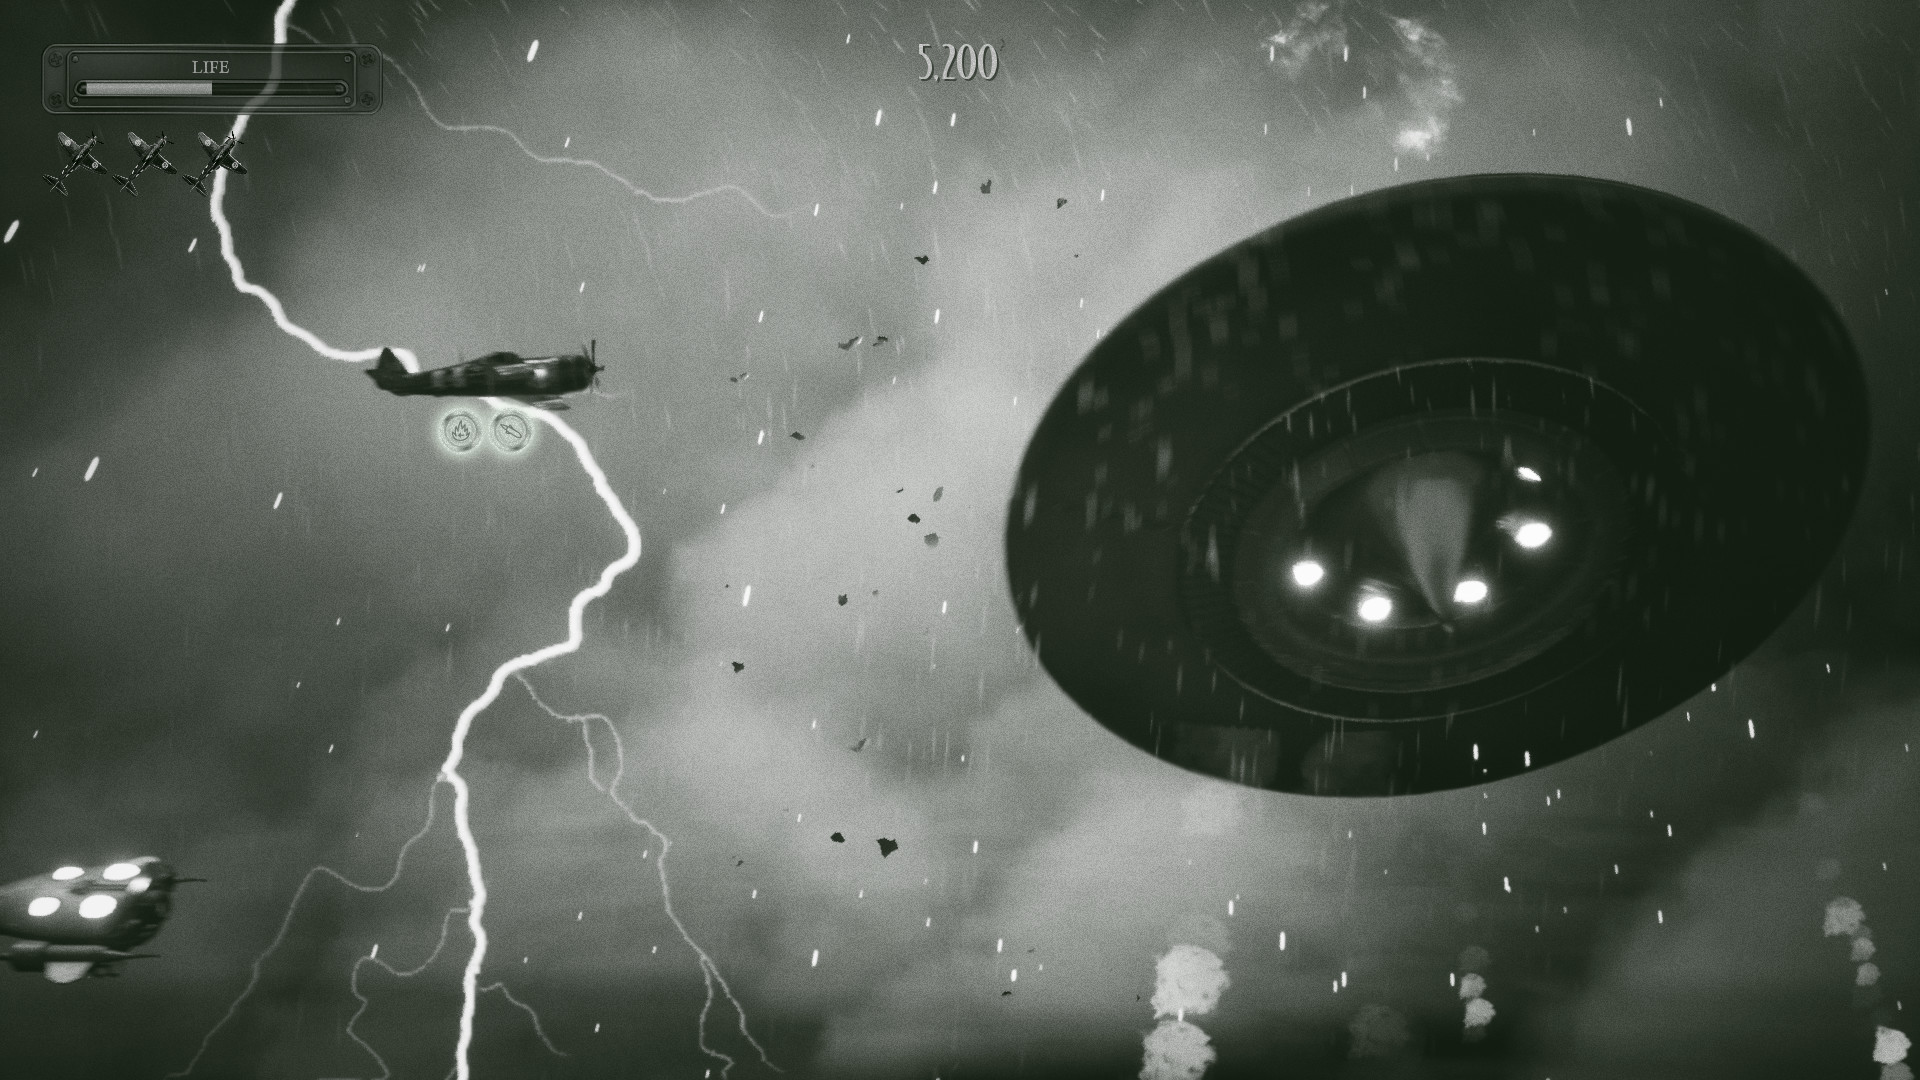 Return To The 1950s In Squadron 51, Sci-Fi Action Headed For PC And Consoles In 2021